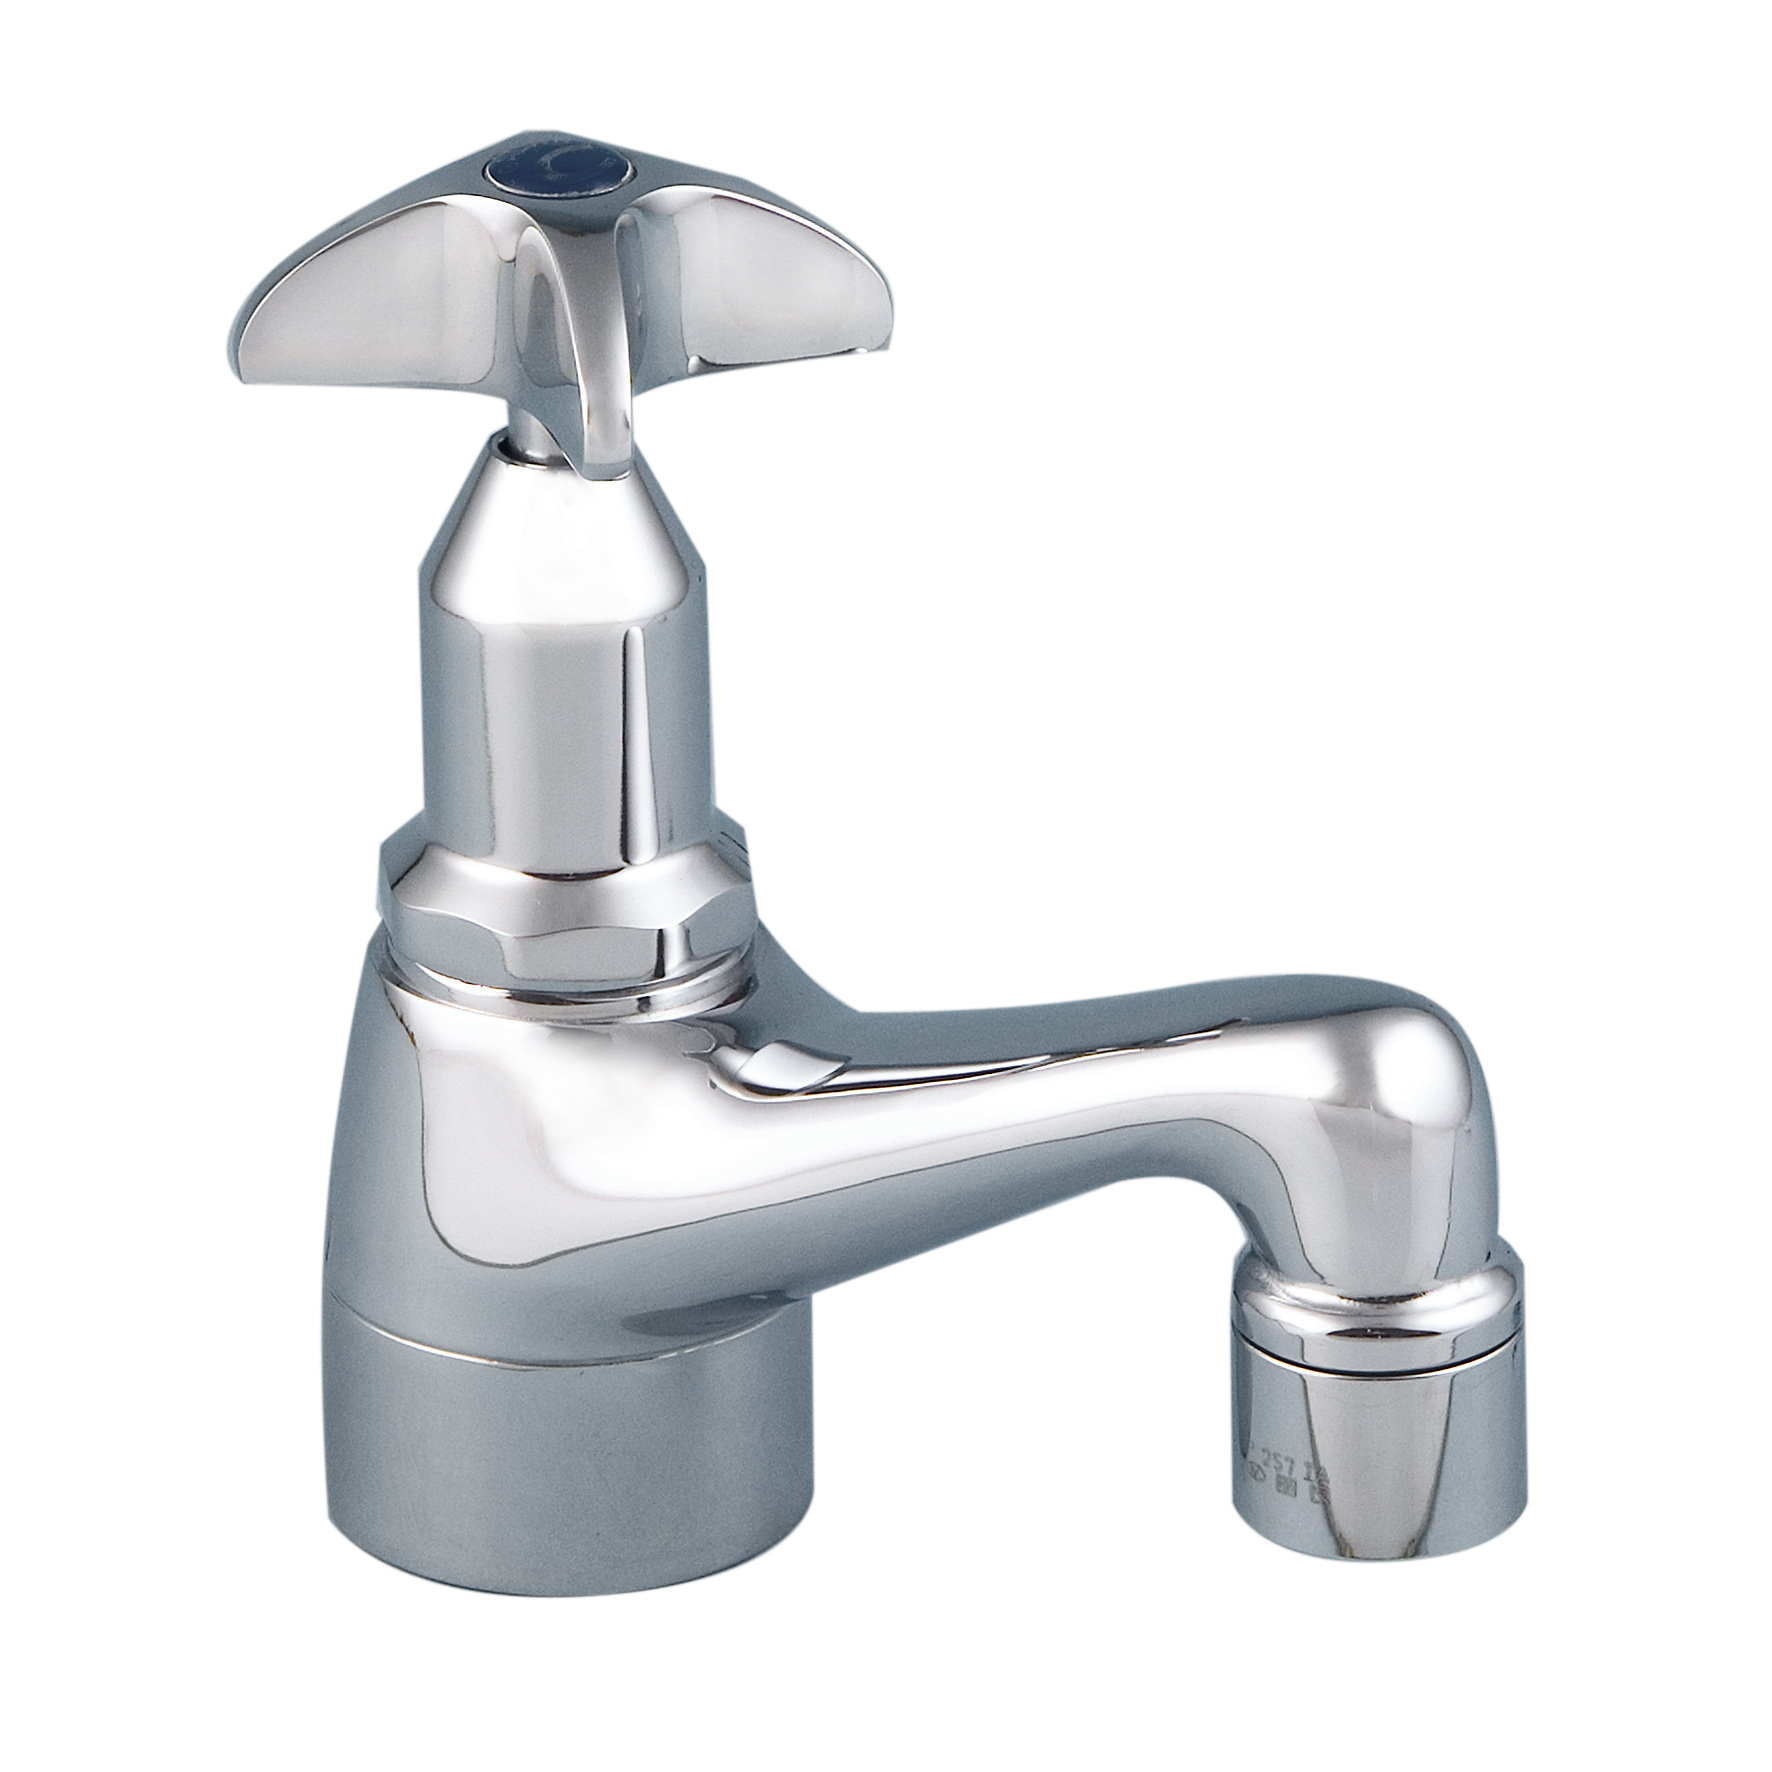 Galvin 20engineering 20chrome 20plated 20vandal 20resistant 20jumper 20valve 20pillar 20tap.